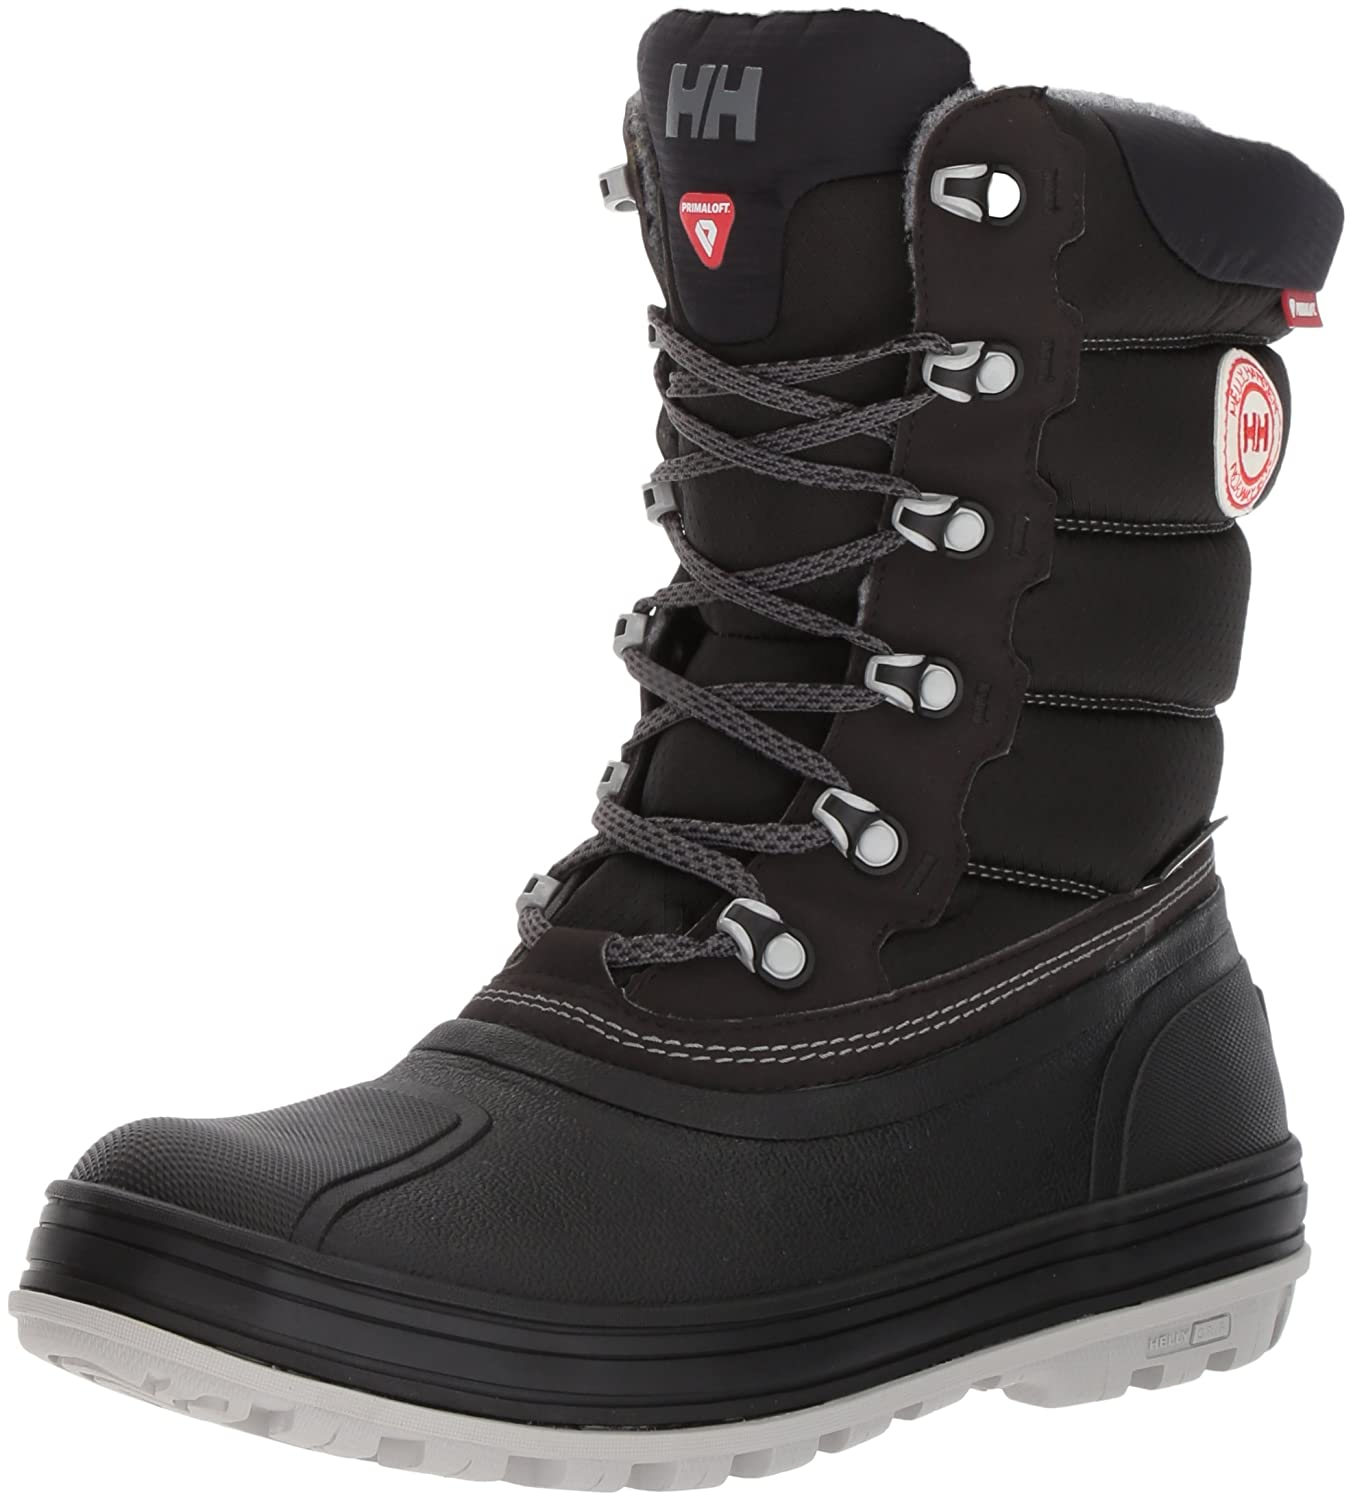 Helly Hansen Women's Tundra CWB Winter Boot B06WLG6W7X 6 B(M) US|Jet Black/Charcoal/Ang